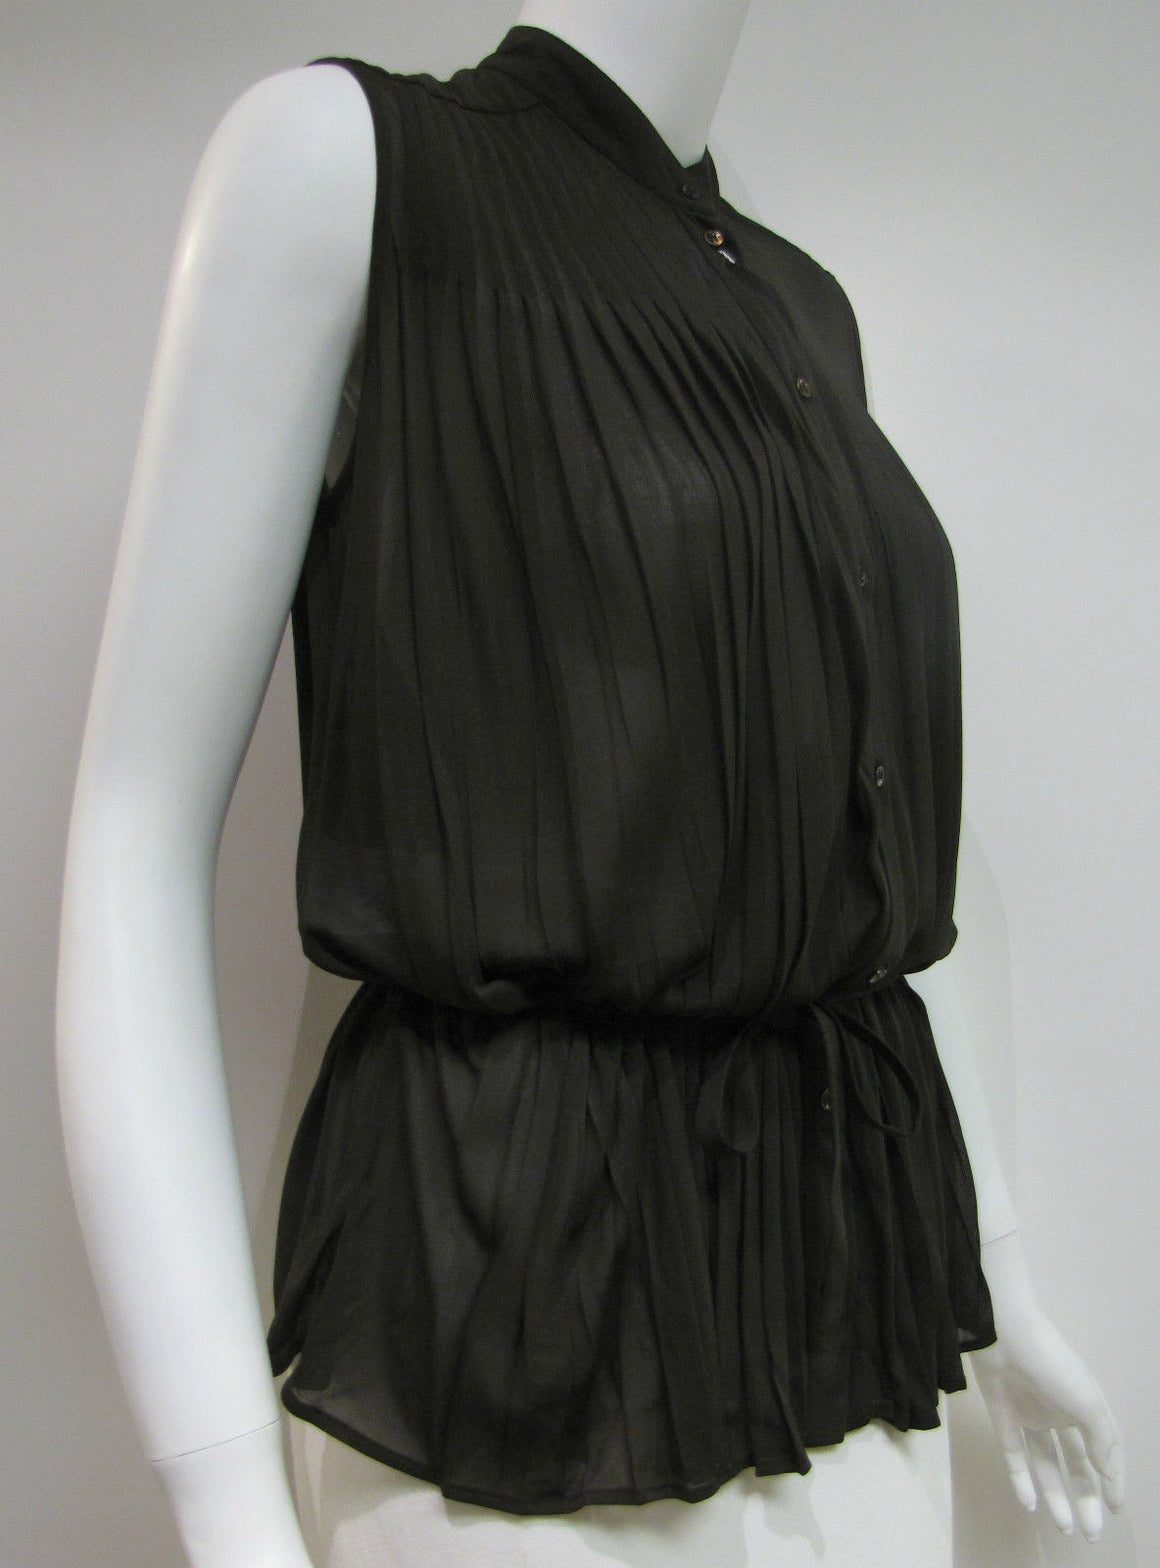 bisbiz.com MAISON MARTIN MARGIELA  Paris Seaweed-Green Viscose Pleated Sleeveless Blouse Shirt  Size: IT40/US6 - Bis Luxury Resale